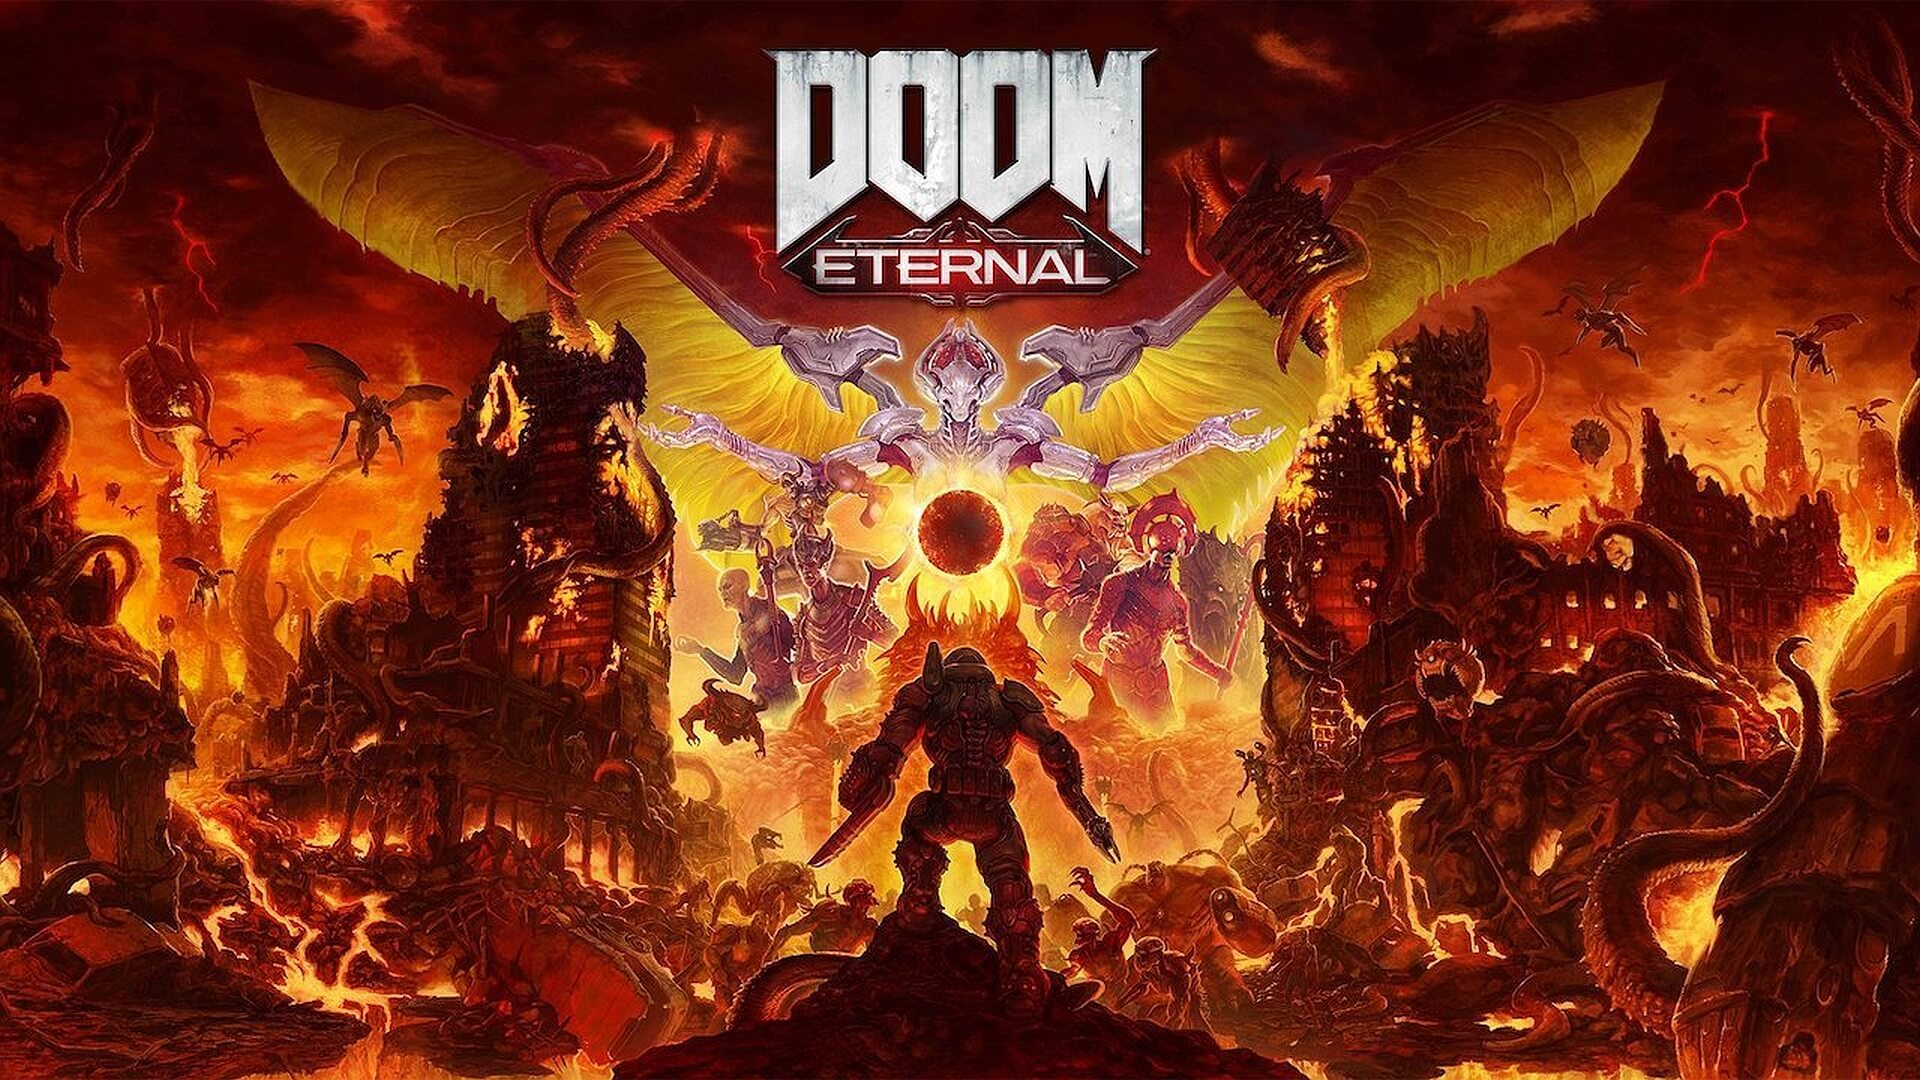 Doom eternal portada